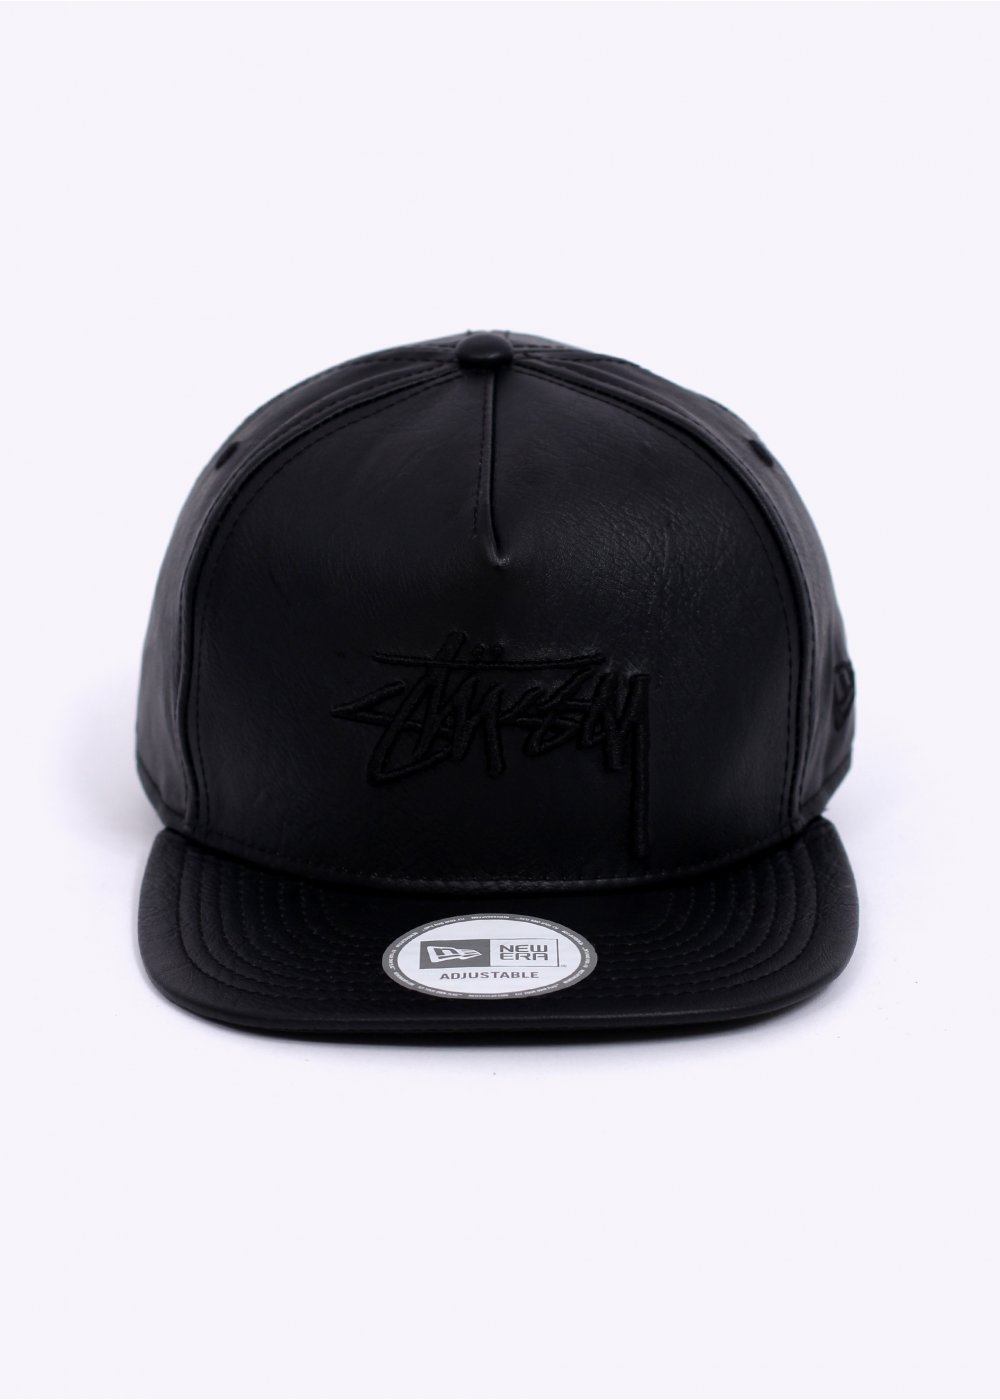 Stussy Stock New Era Cap - Leather Black 63e0372ee0c